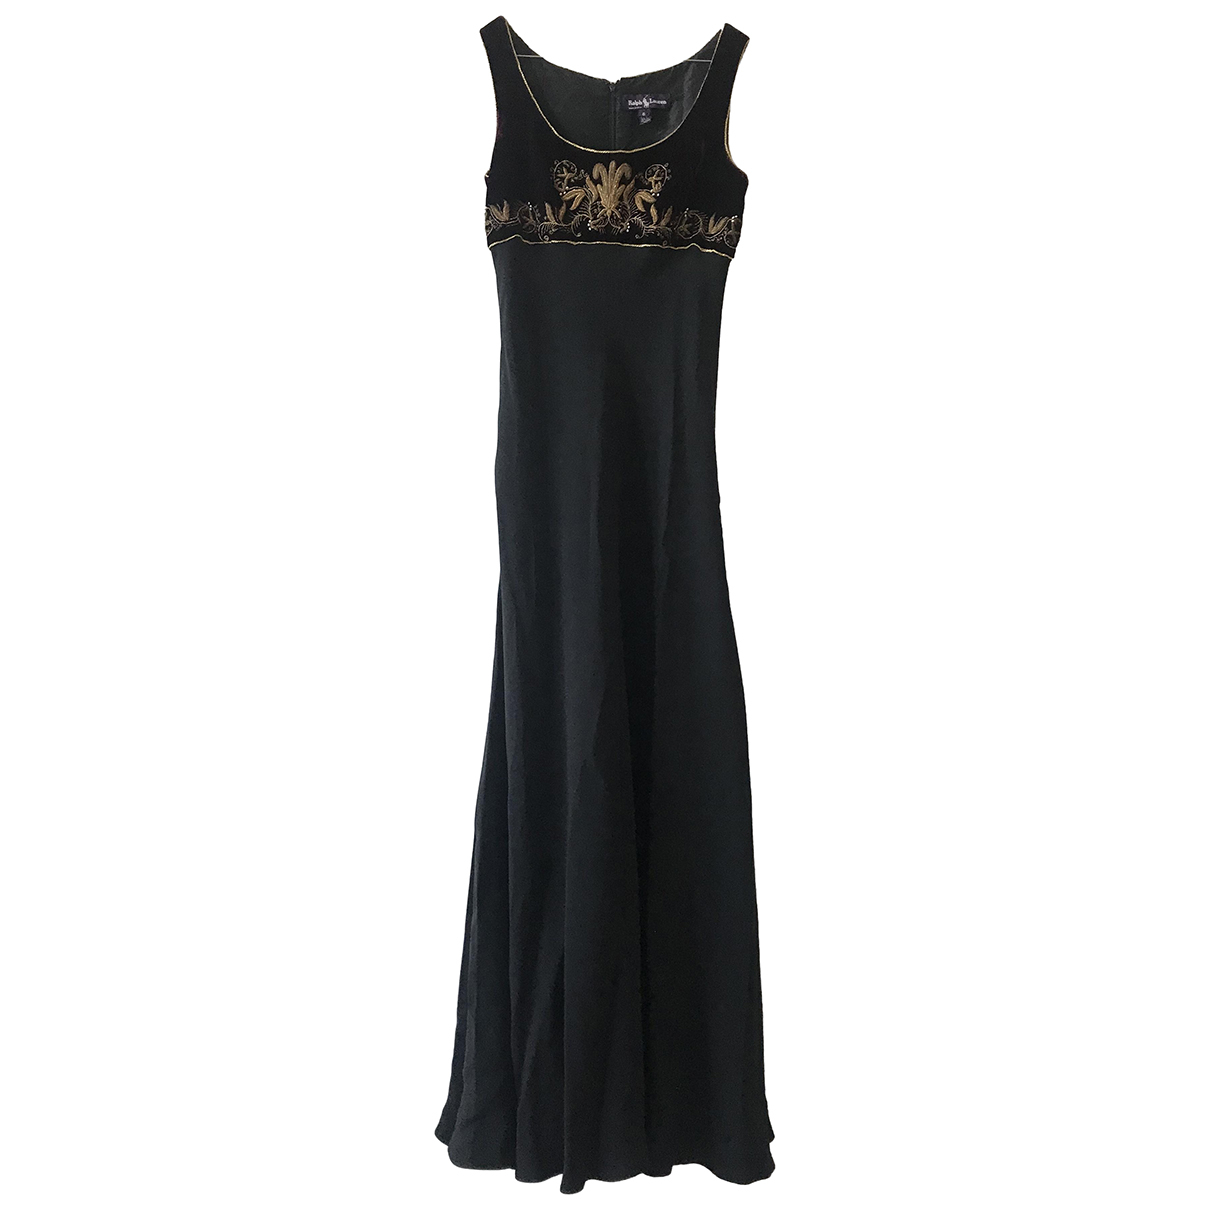 Ralph Lauren \N Black Silk dress for Women 40 IT